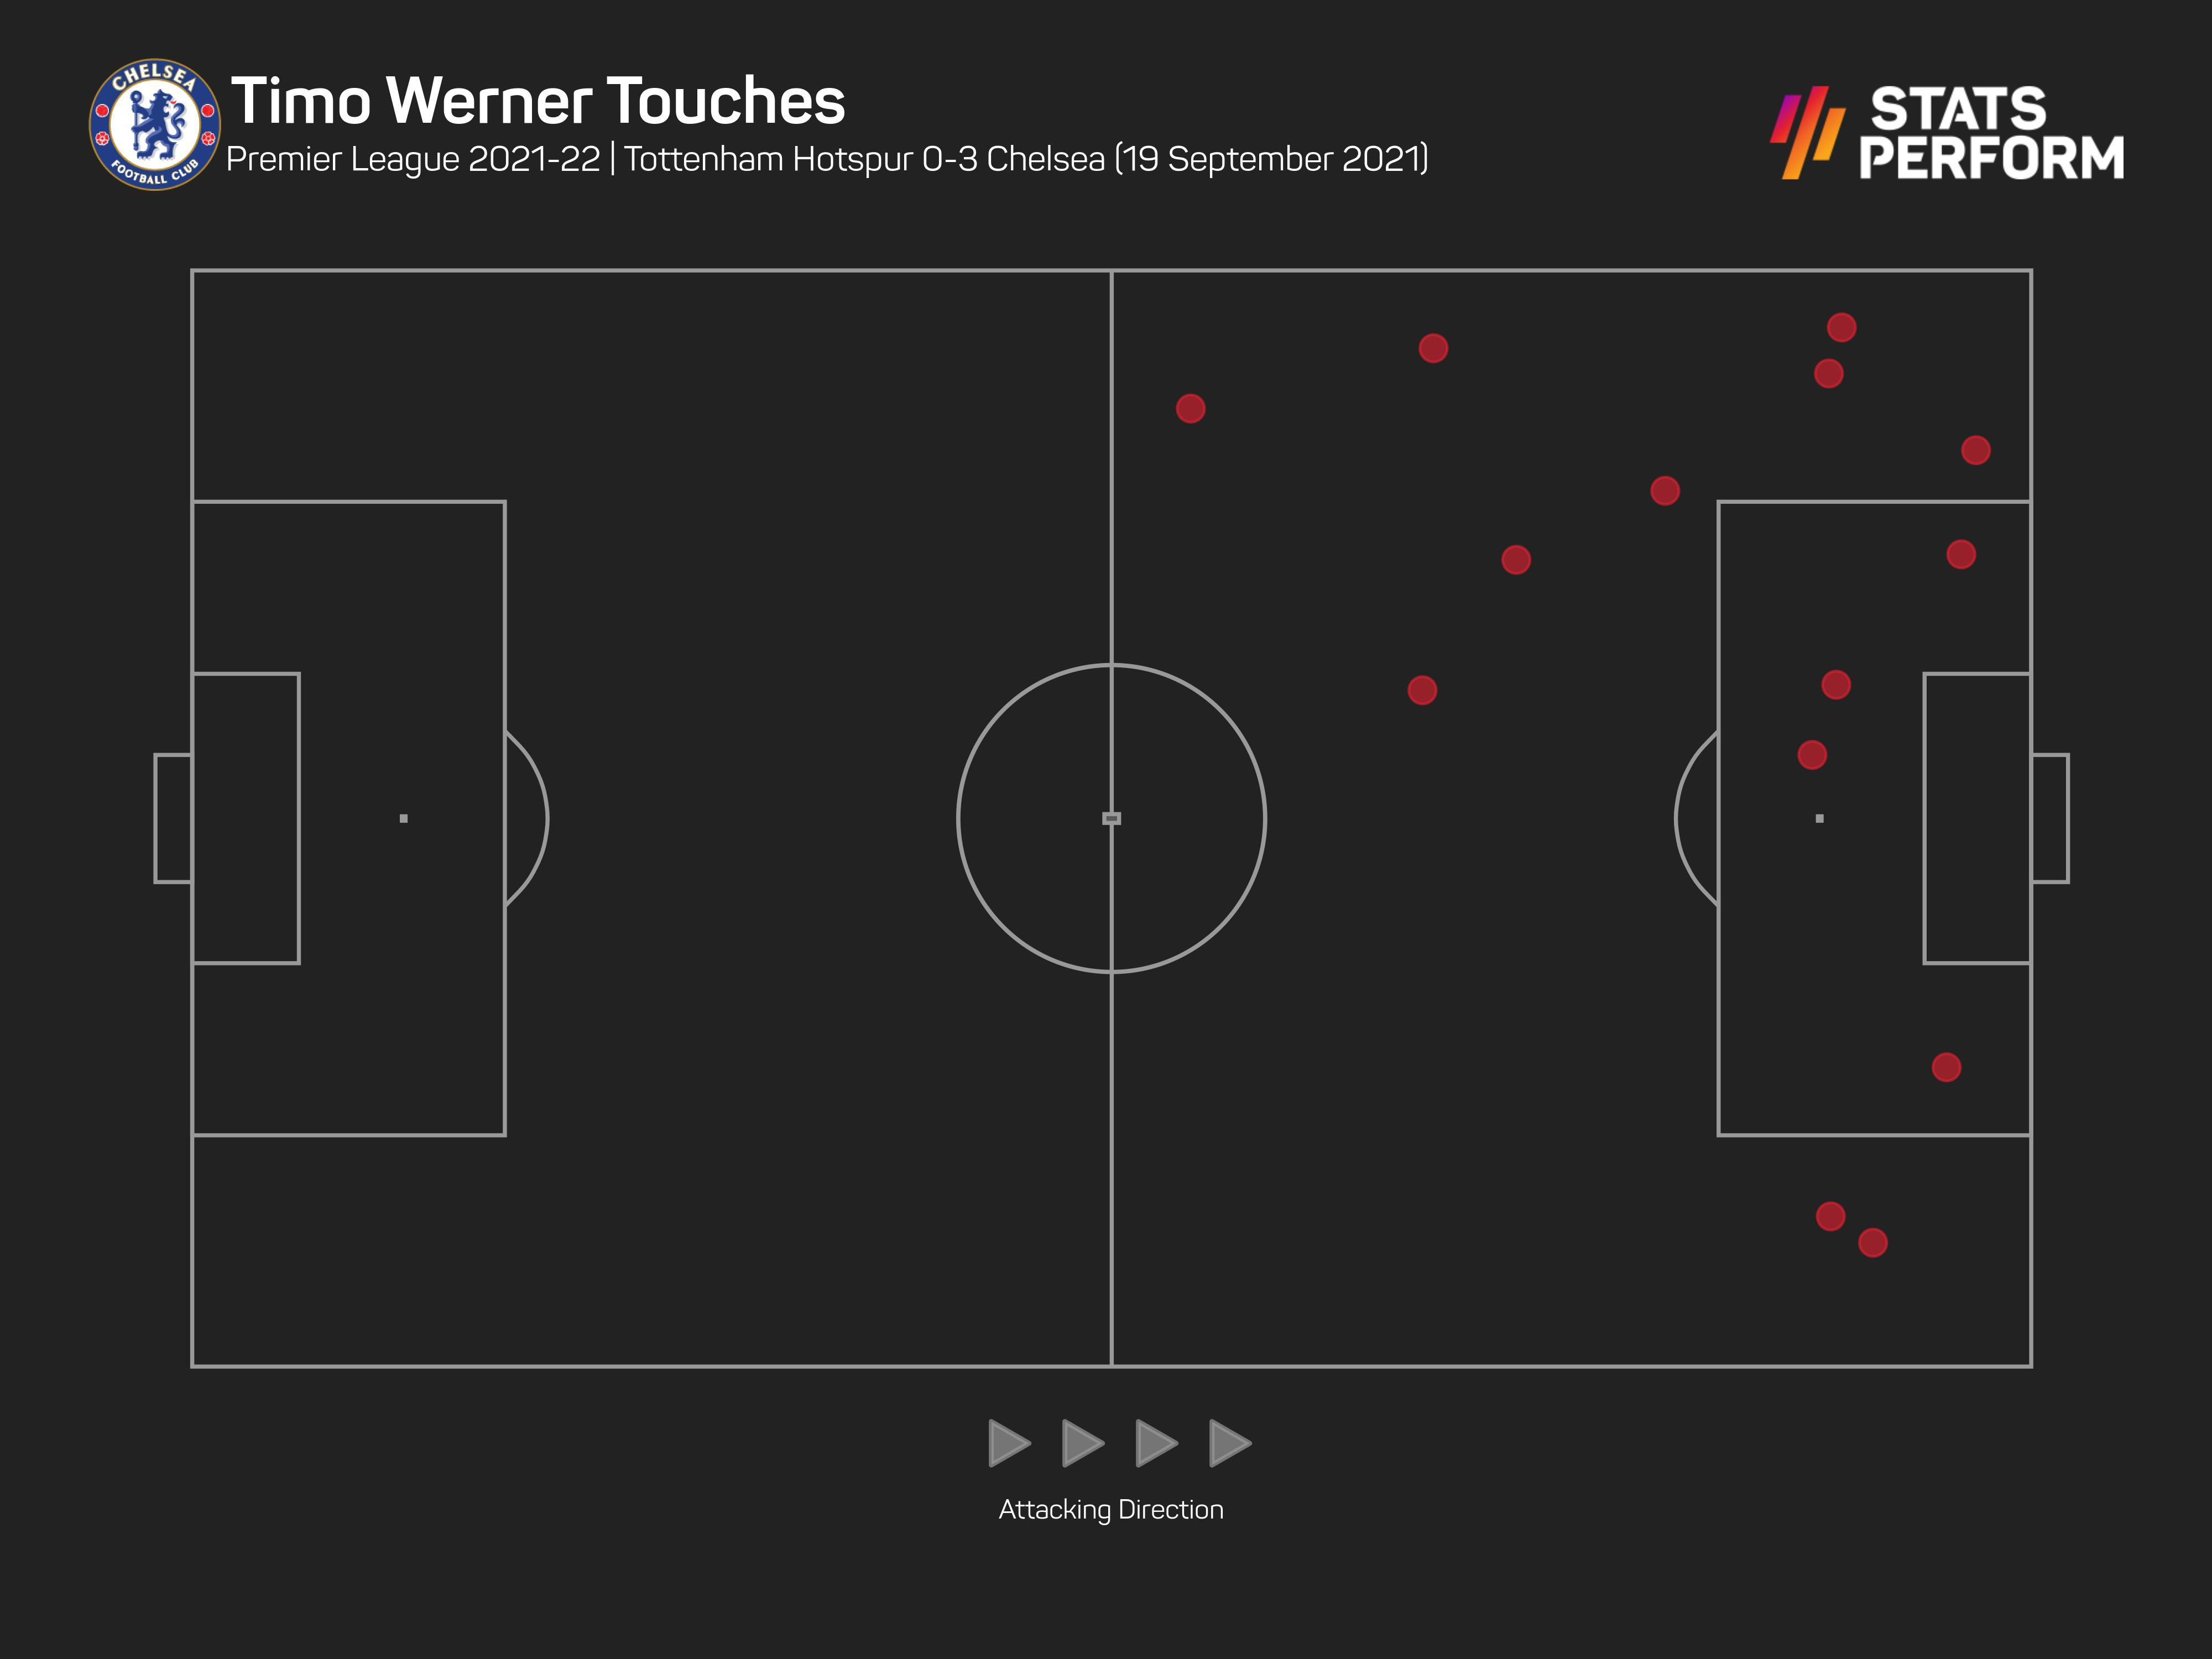 Timo Werner had an impact from the bench at Tottenham